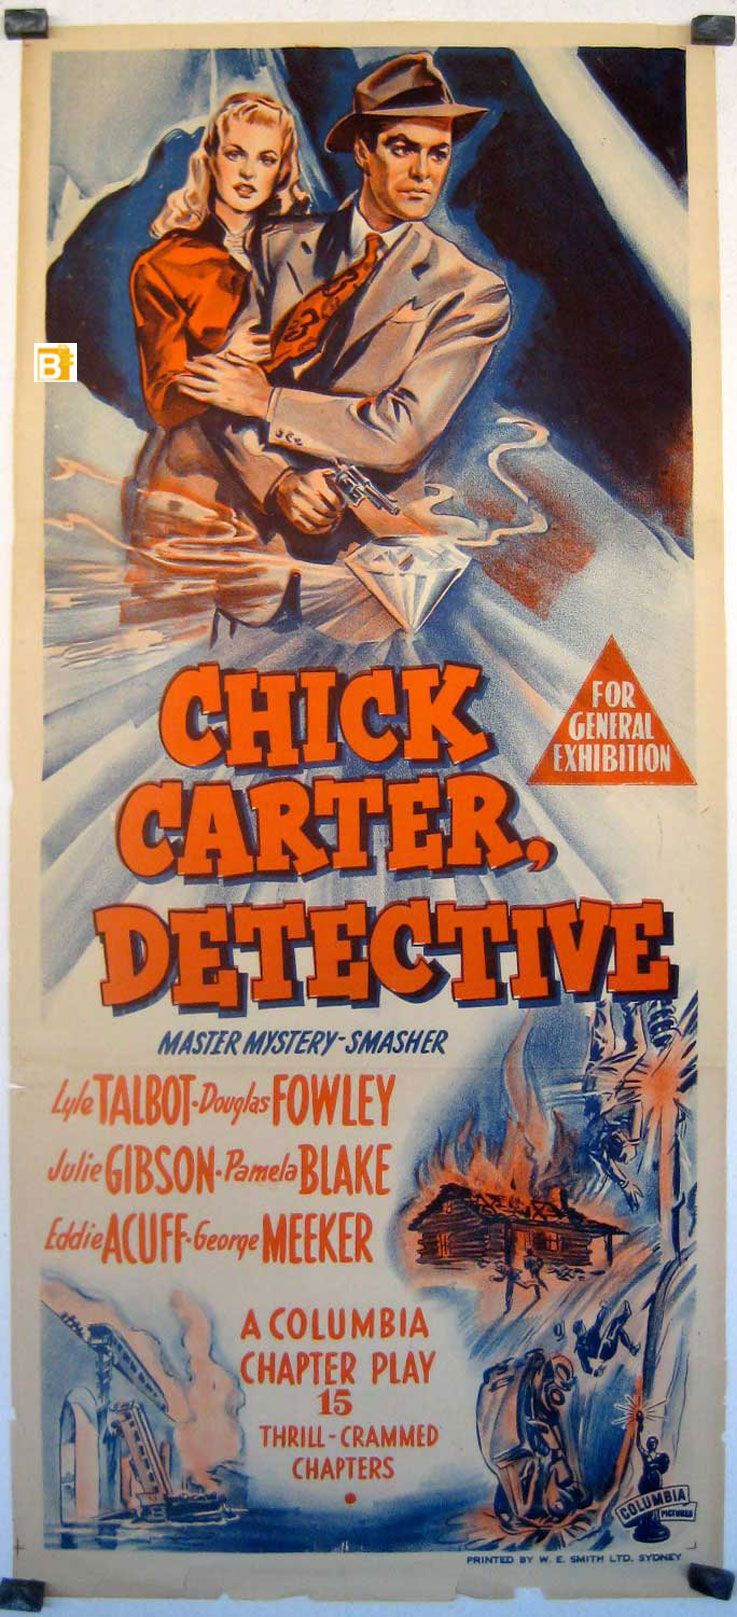 Download Chick Carter, Detective Full-Movie Free